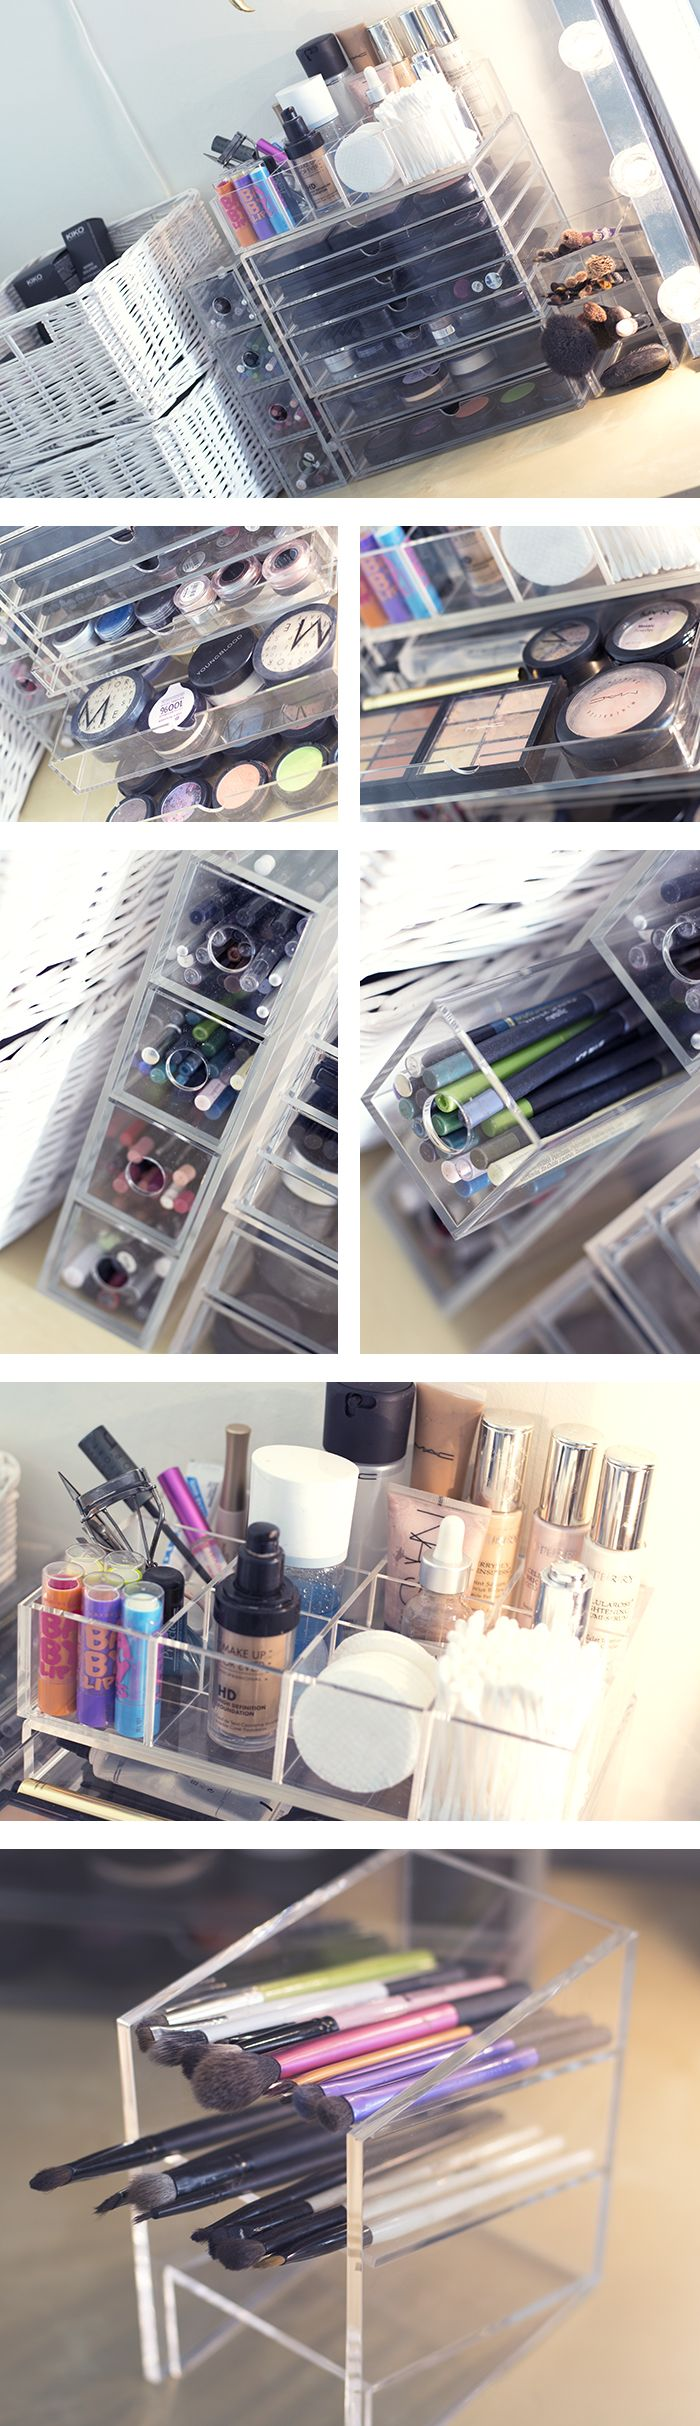 Great set up. Looks like Muji pieces to me. Inspiration for my spring organizing projects. And the makeup is fantastic in these shots.